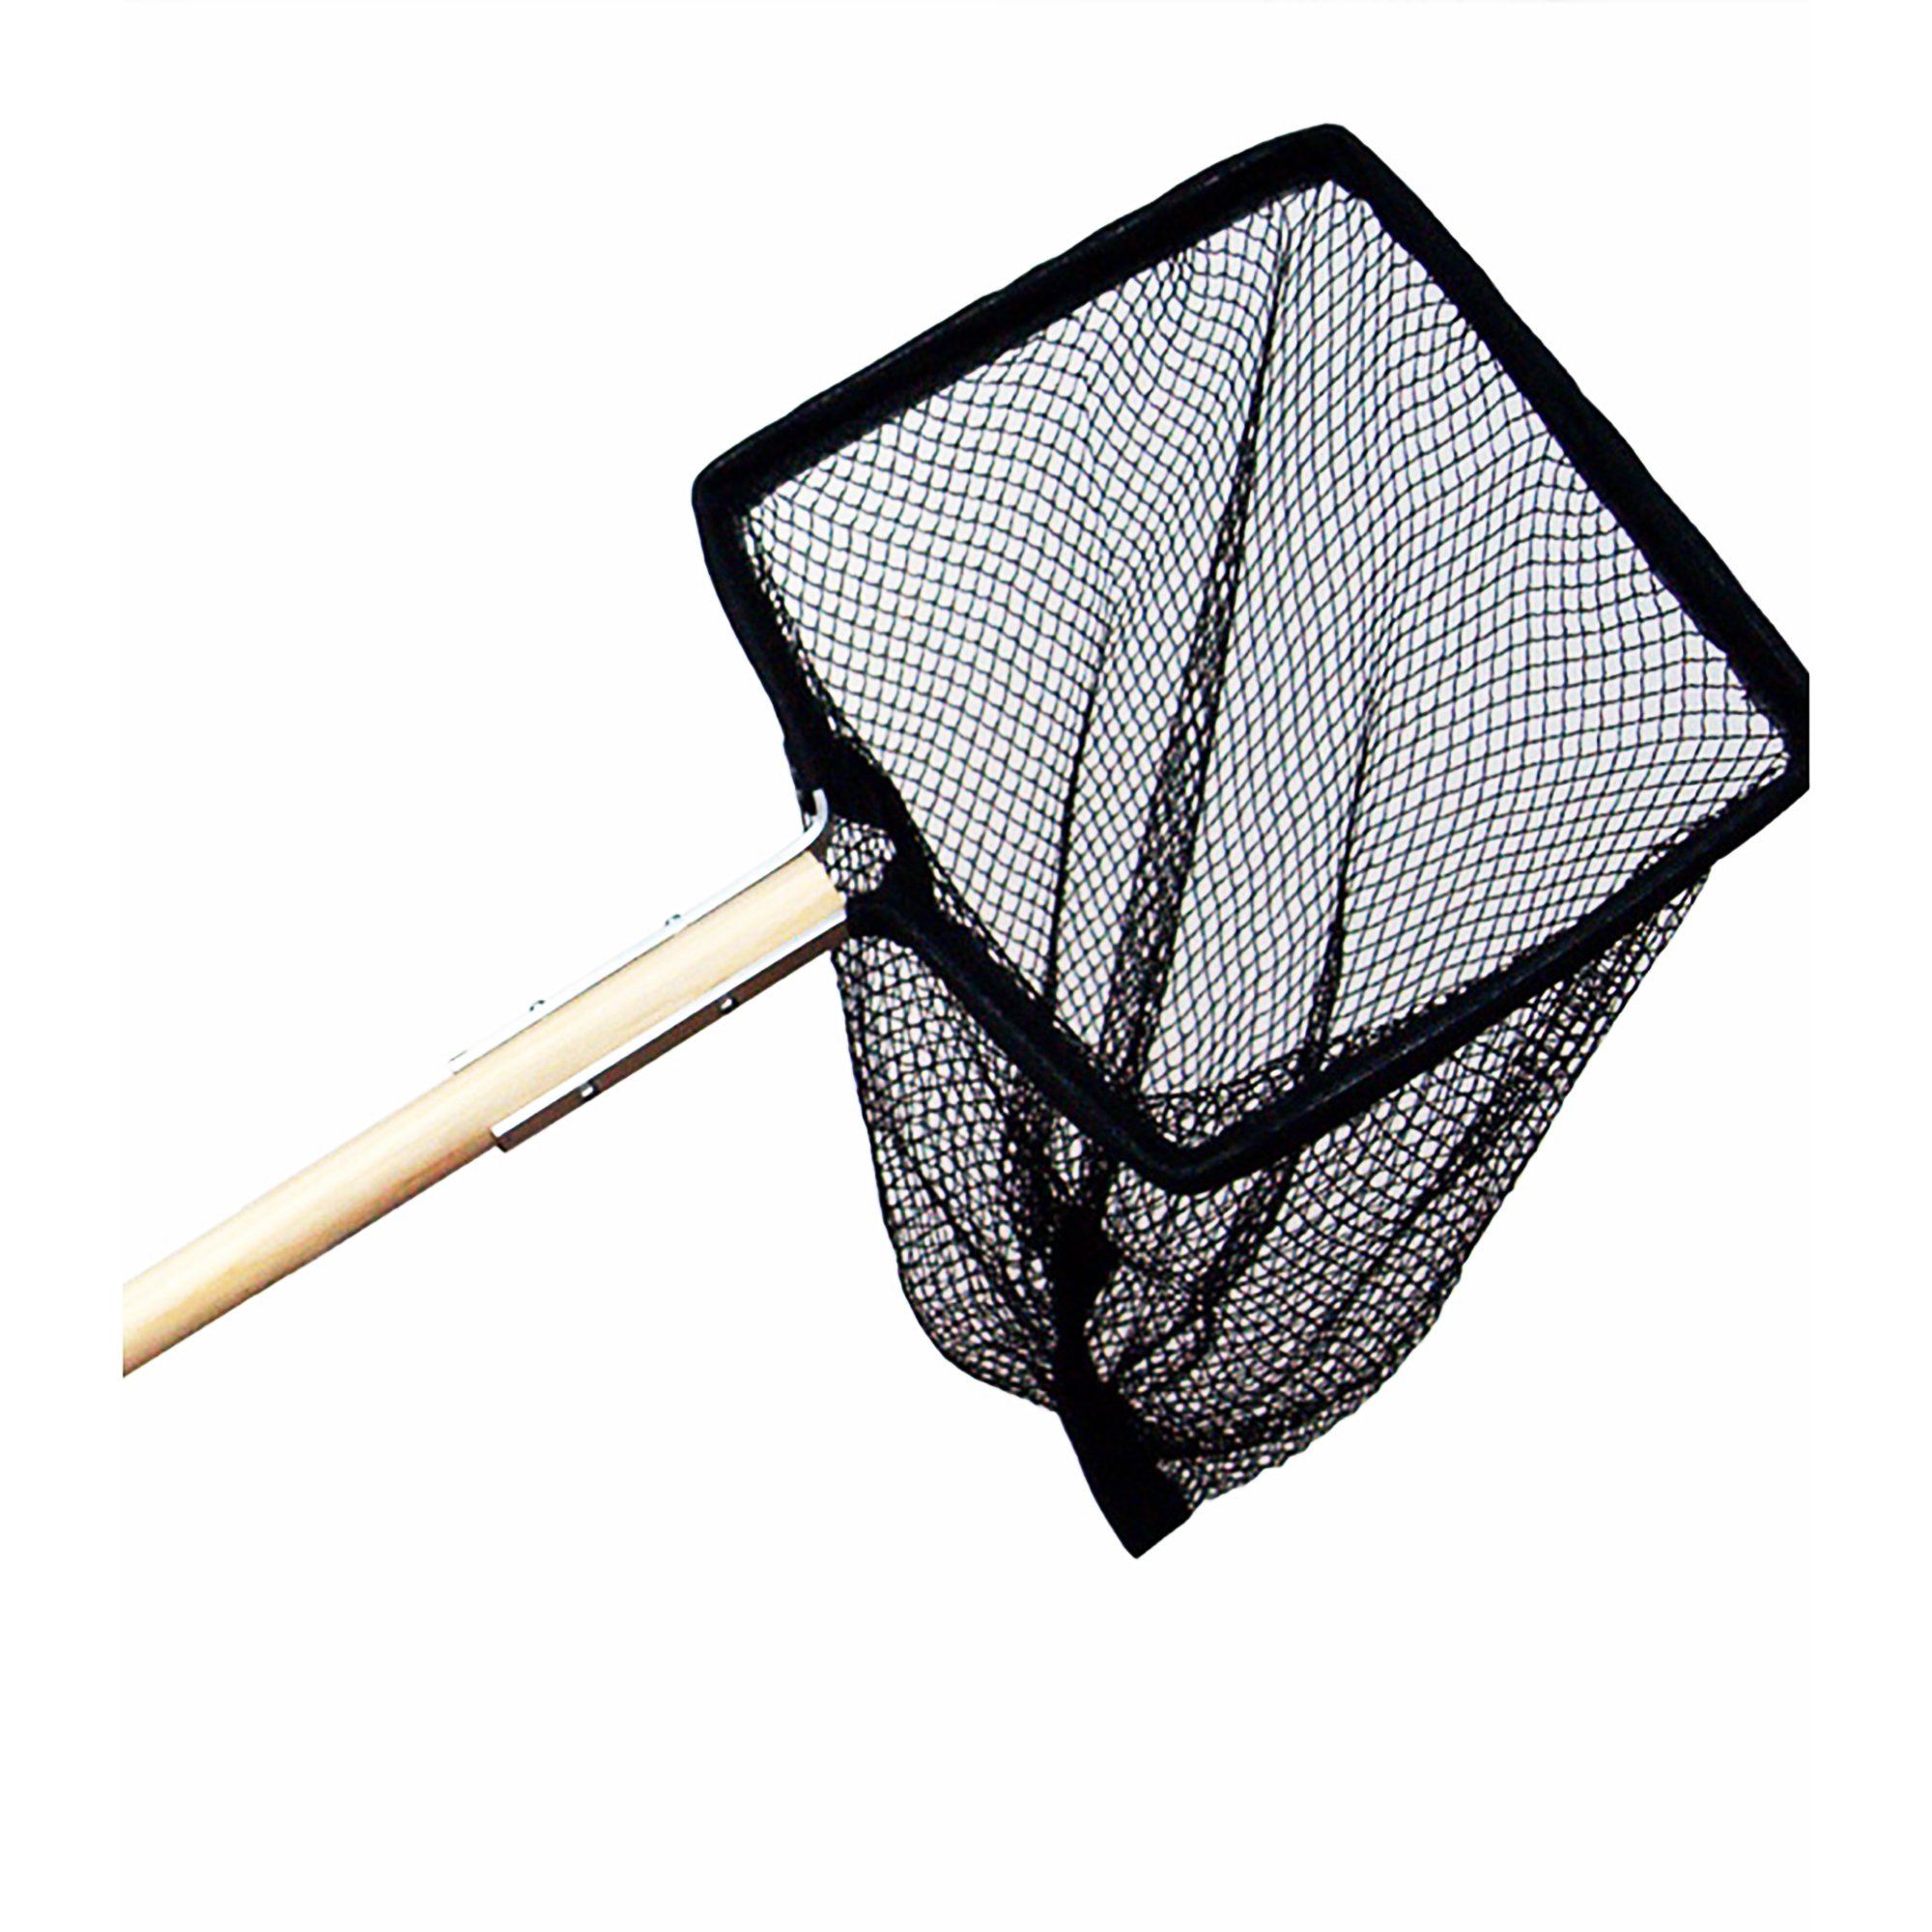 Supa Wooden Handle Pond Net (12x10-48 Handle) (Assorted)